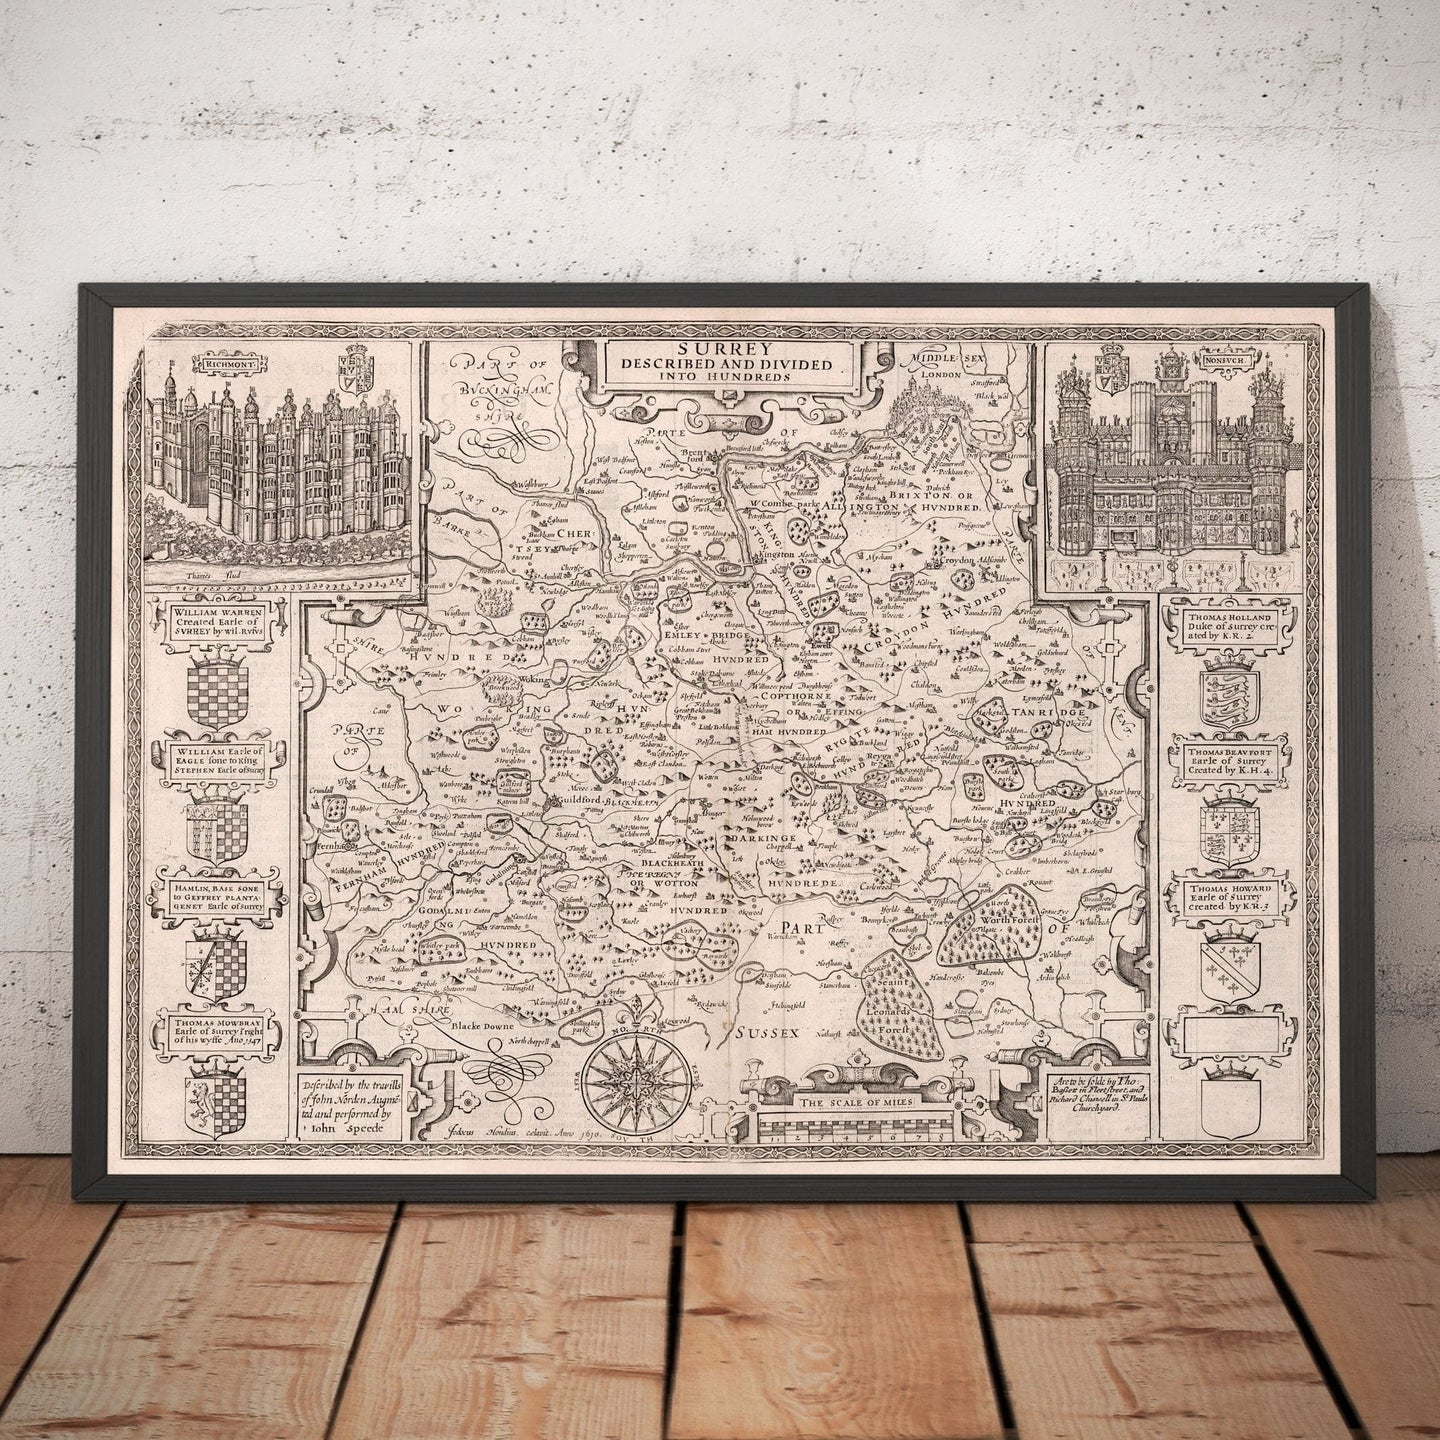 Old Map of Surrey in 1611 by John Speed - Woking, Guildford, Croydon, Richmond, London - Vintage Monochrome Wall Art - Framed or Unframed